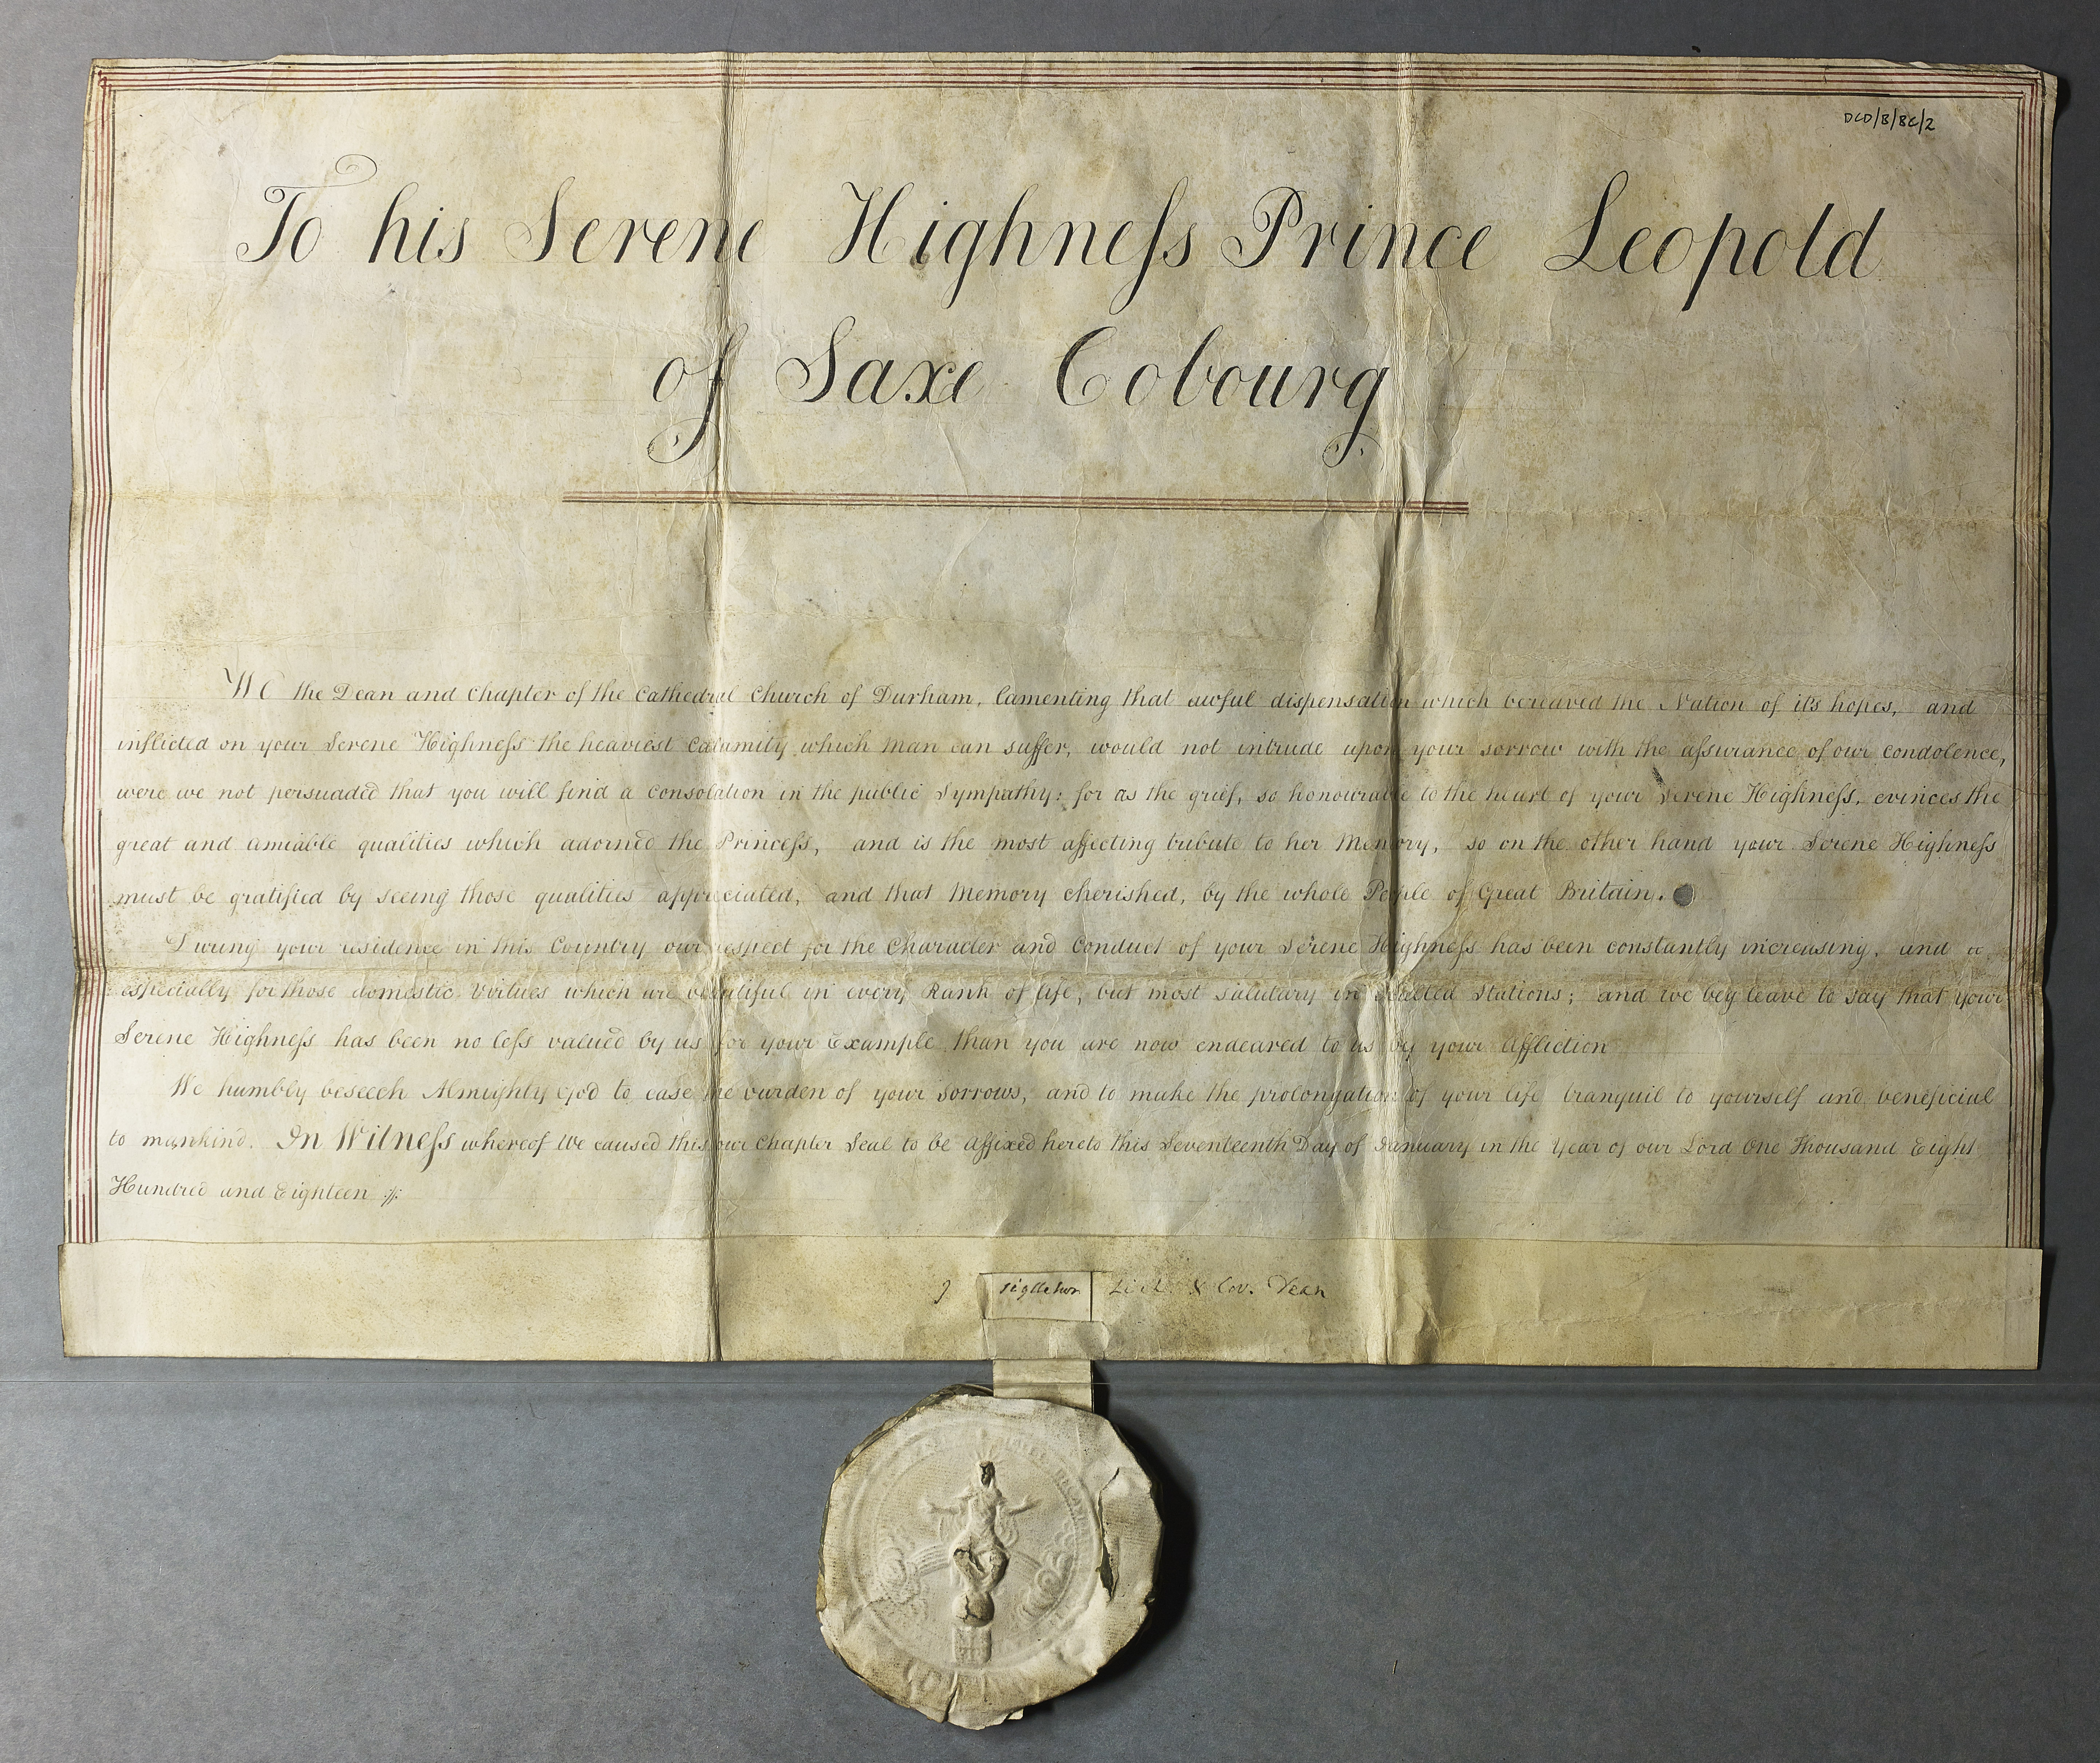 Image of sealed address by the Dean and Chapter of Durham to Prince Leopold of Saxe Coburg upon the death of his wife Princess Charlotte, 17 January 1818. (Ref: DCD/B/BC/2. Reproduced by kind permission of the Chapter of Durham Cathedral).